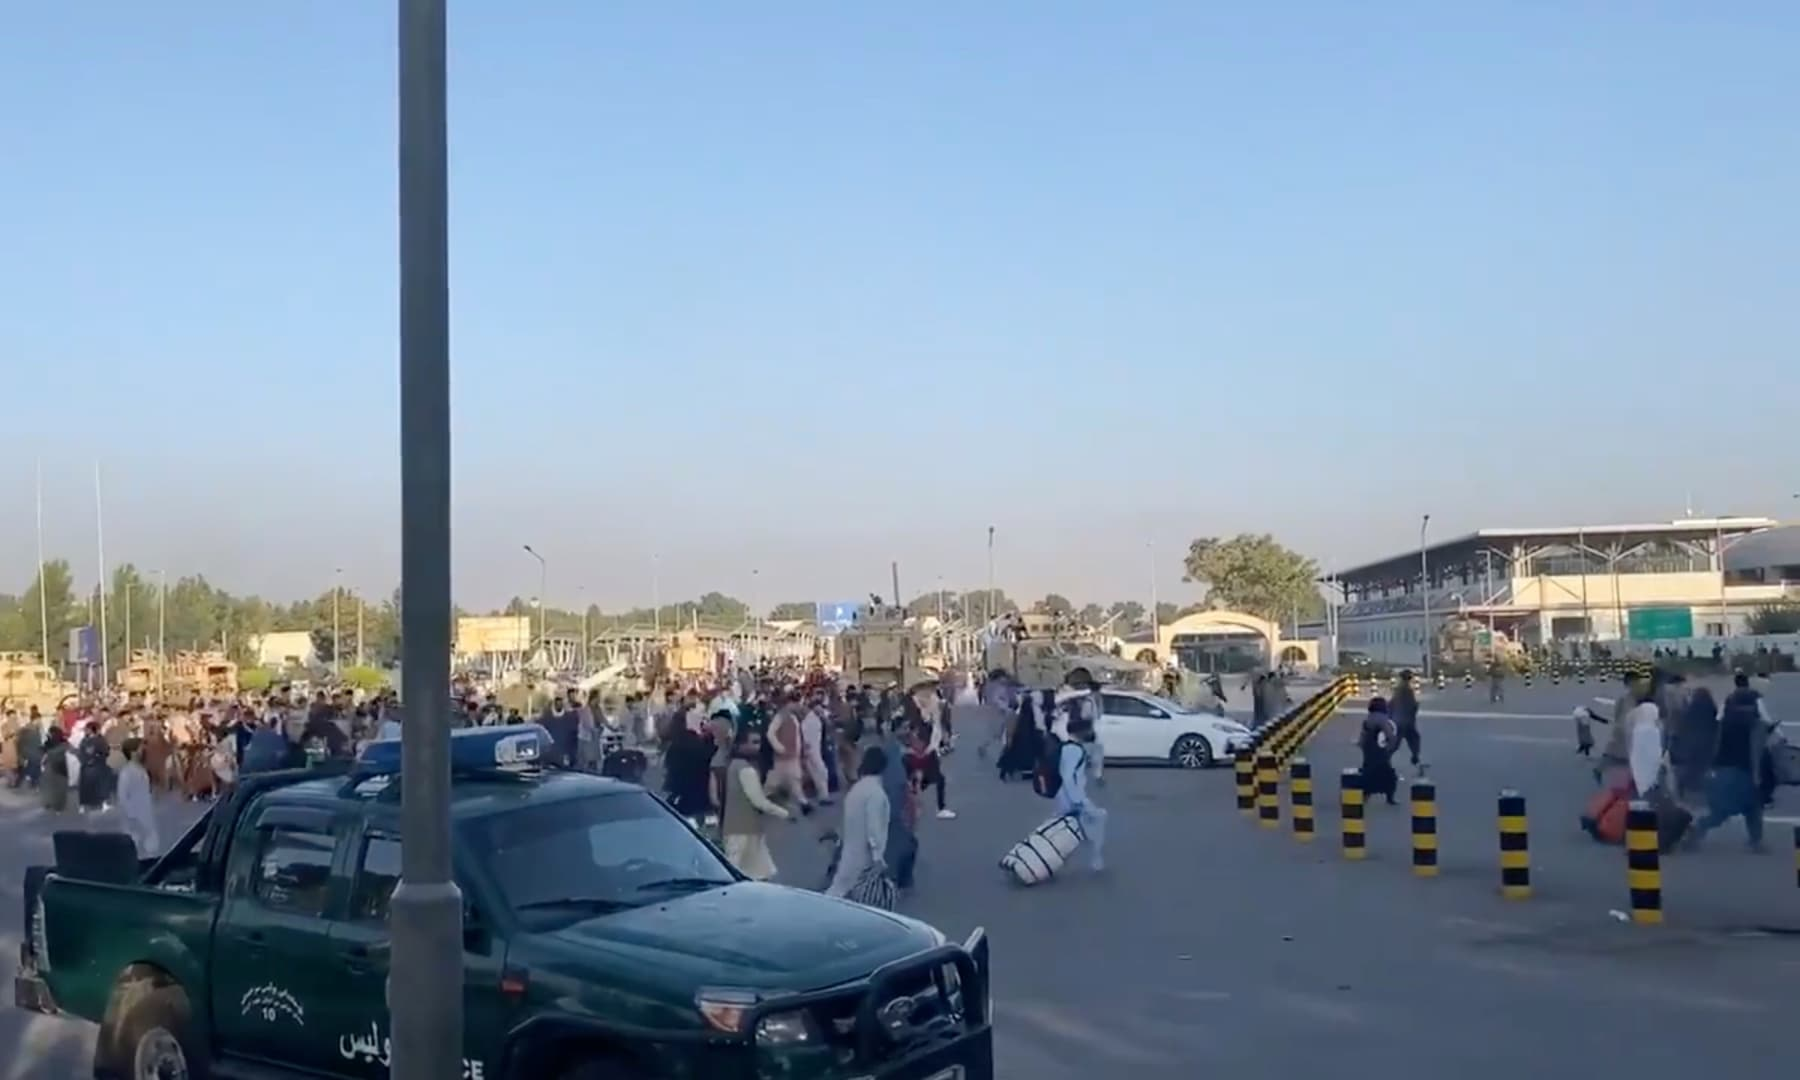 A horde of people run towards the Kabul Airport Terminal after Taliban insurgents took control of the presidential palace in Kabul, Afghanistan on August 16, 2021. — Reuters